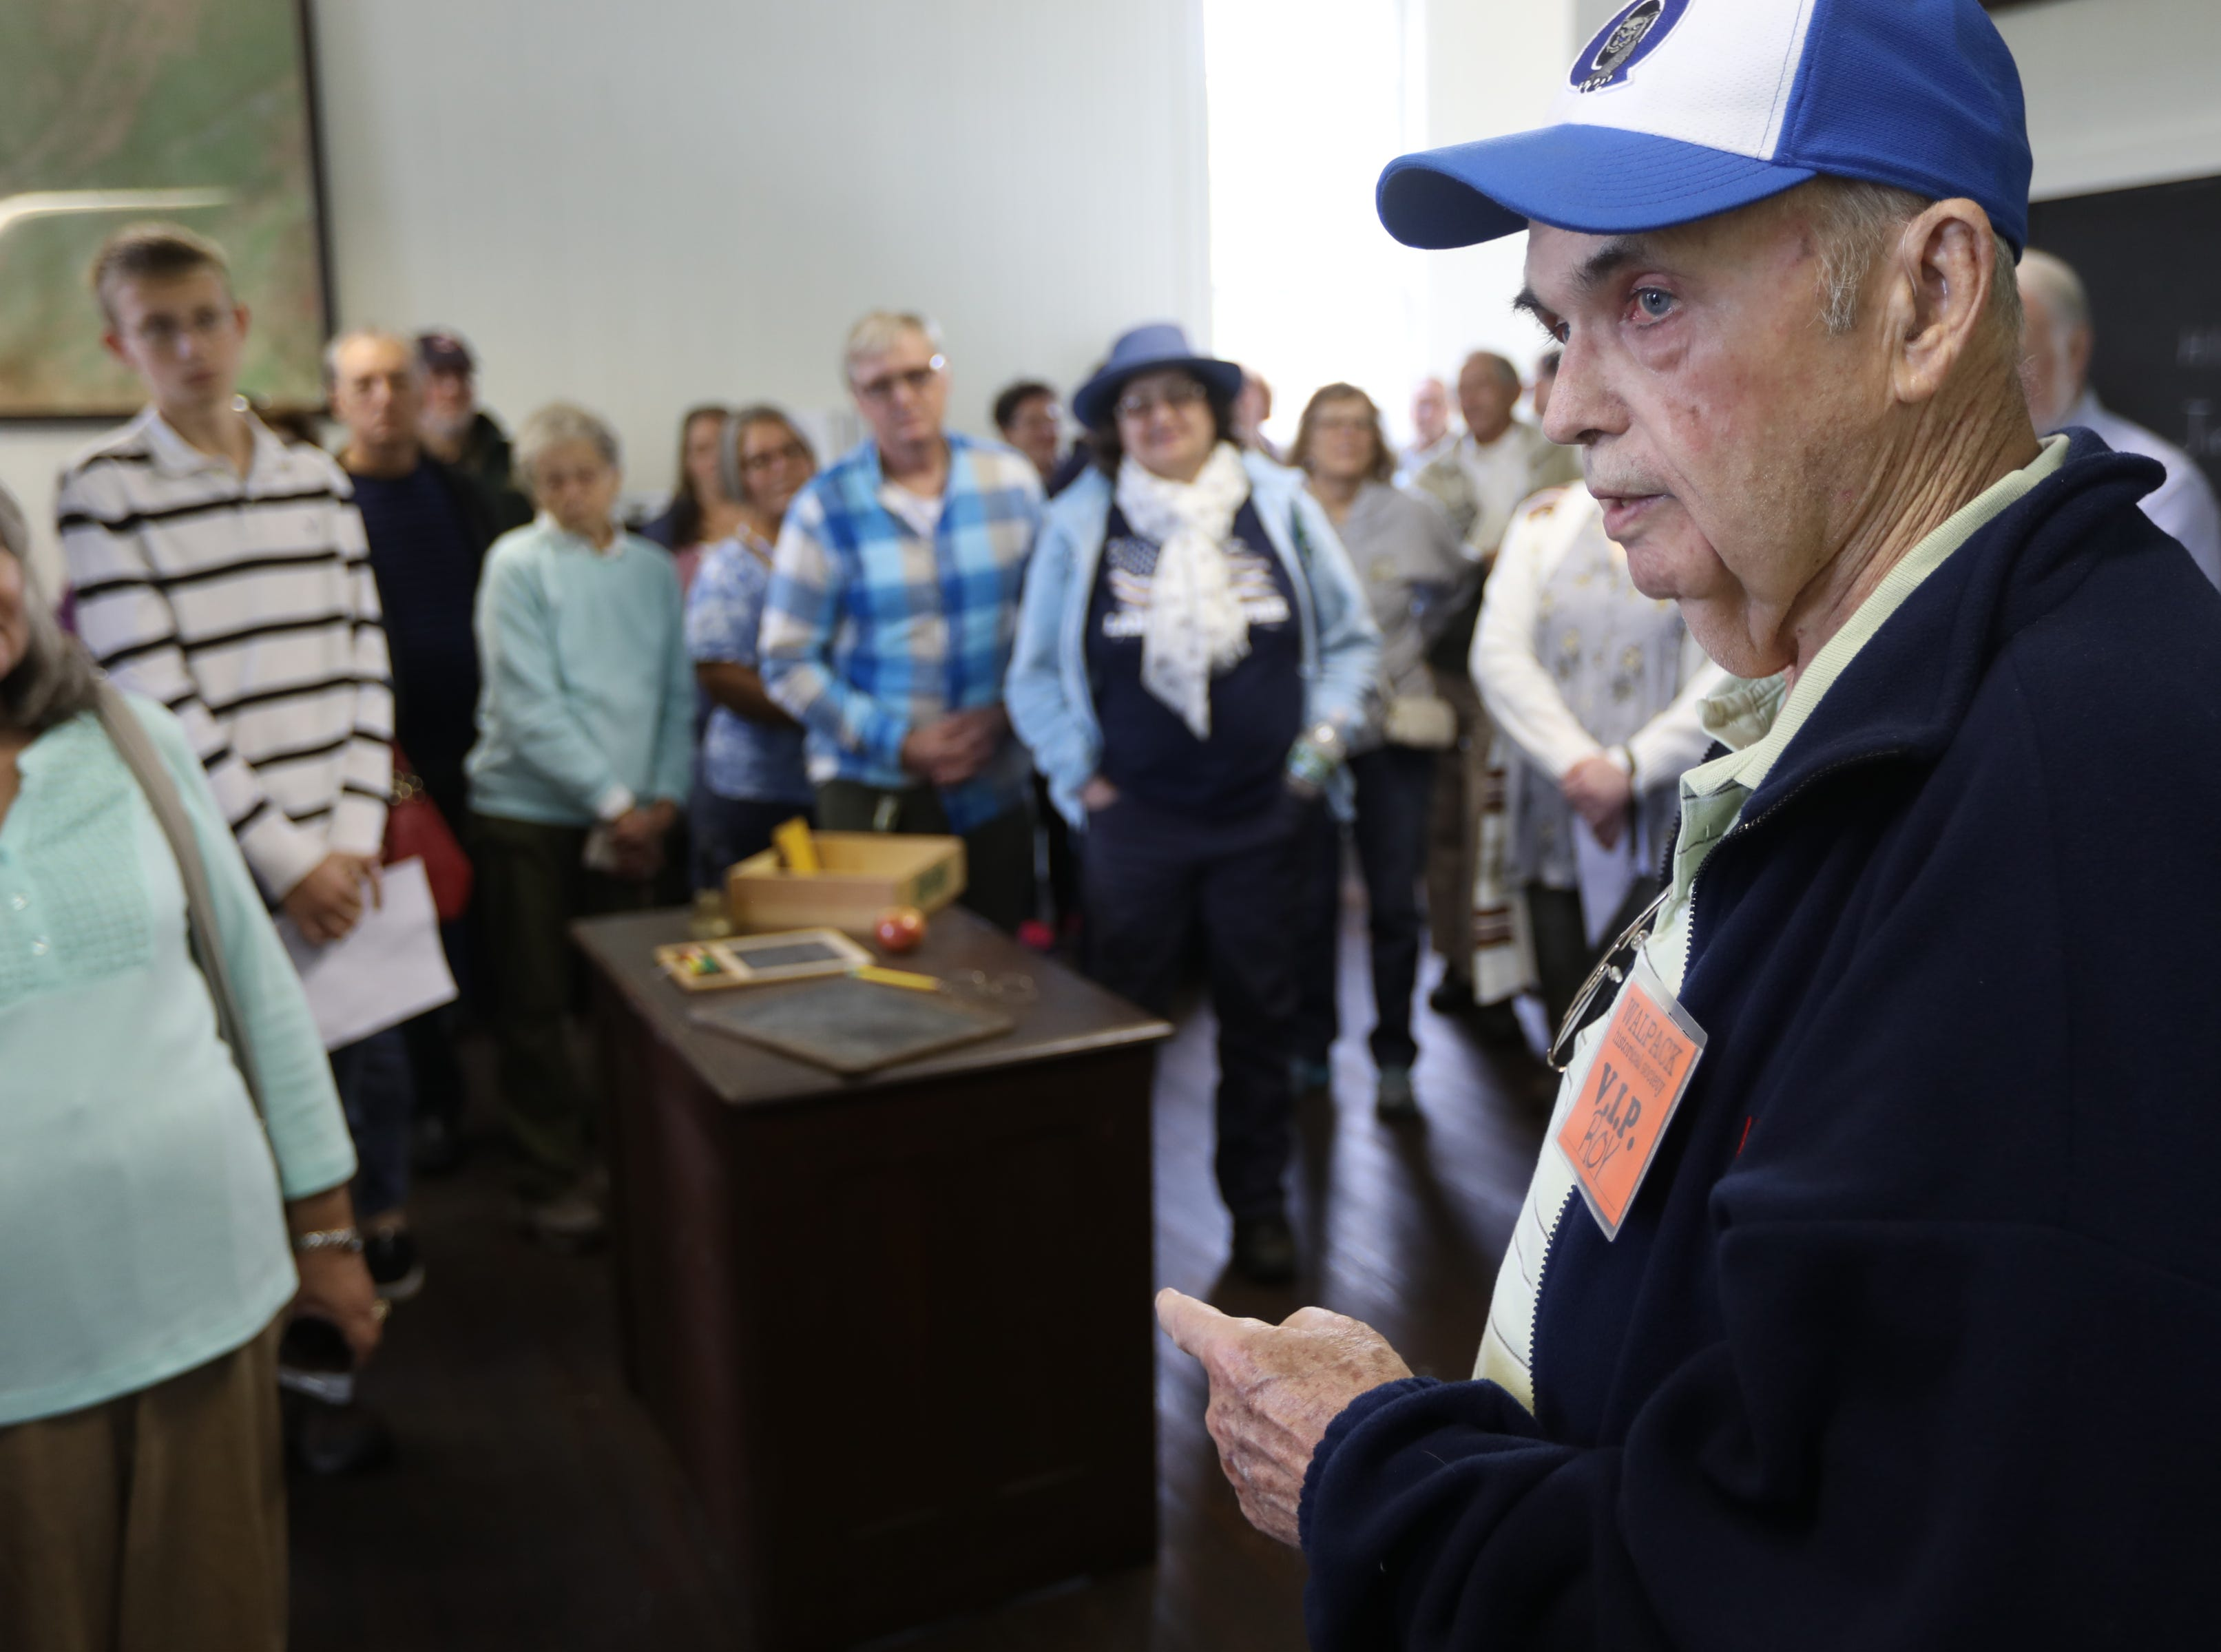 Roy Aber, 82, currently of Allentown, PA, speaks to people inside the Walpack School.  Aber attended the school from first grade until 1950, when he finished eighth grade.  His father was a teacher at the time inside the school that was built in the 1890s. Sunday, September 23, 2018